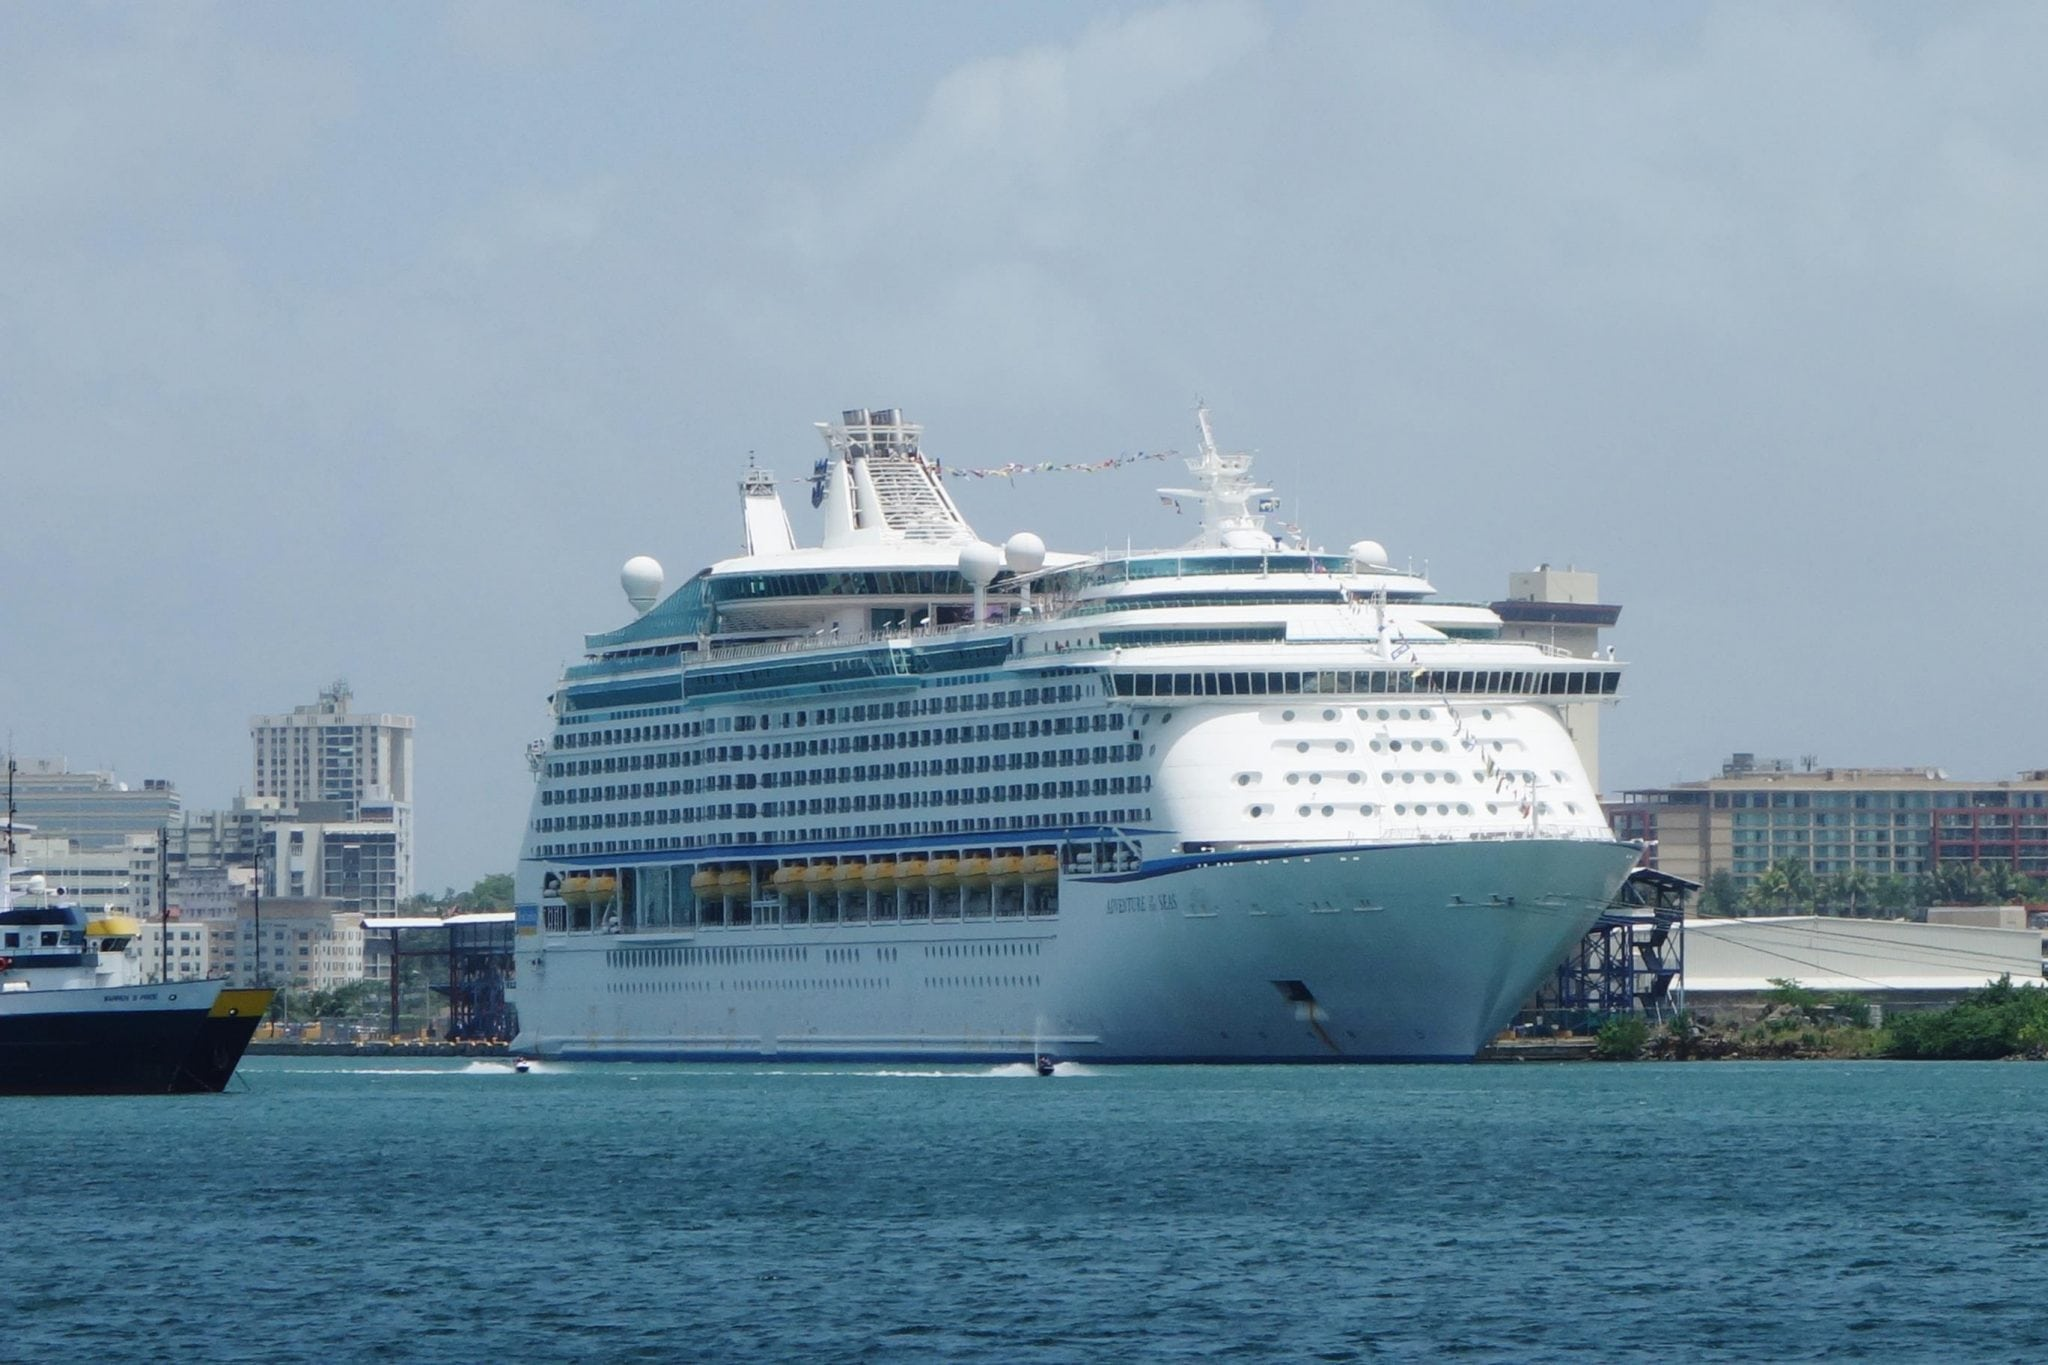 Adventure of the Seas in San Juan, PR